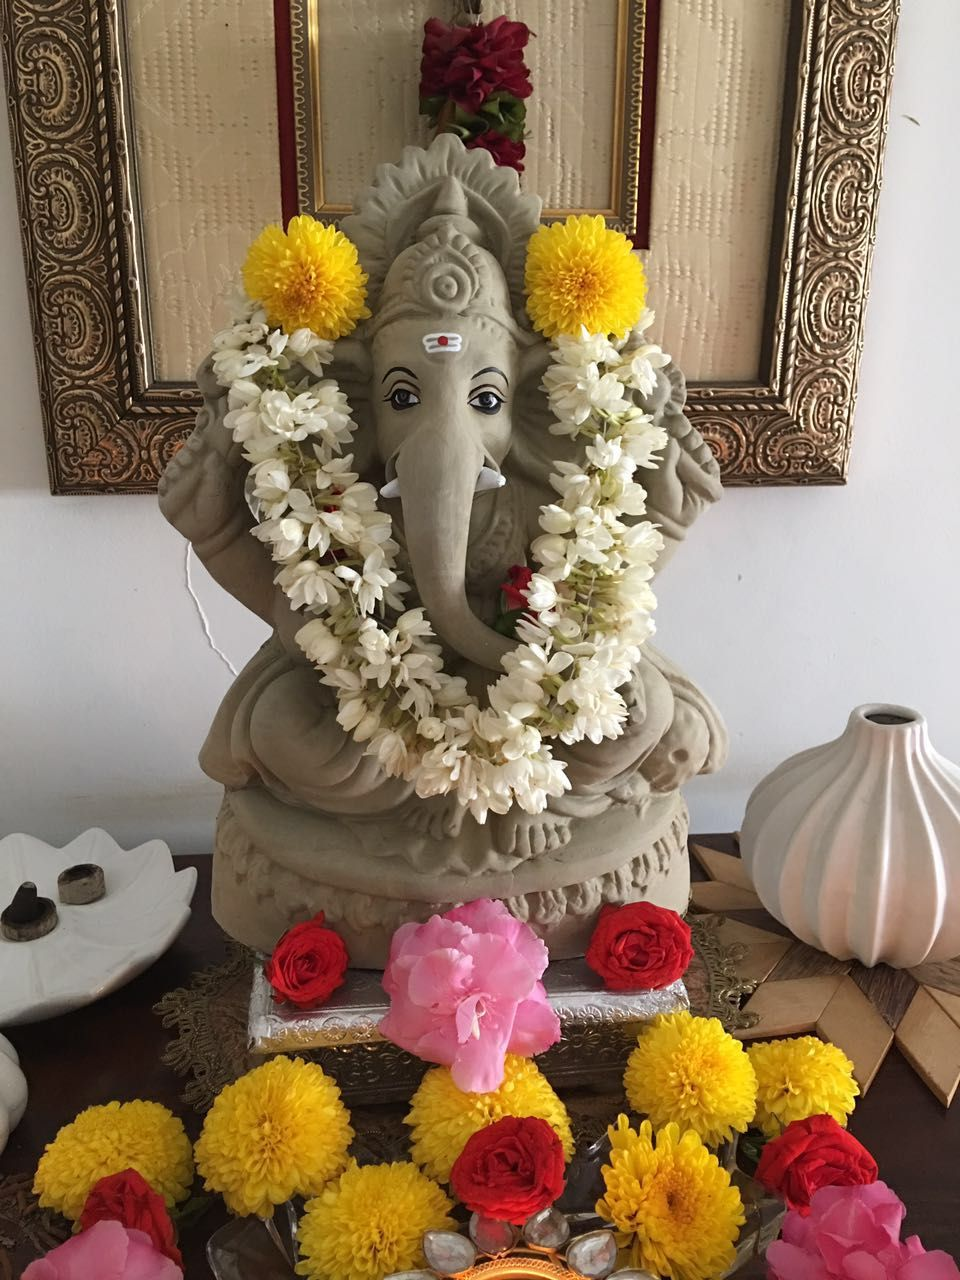 Ganpati Decoration Ideas | Ganpati Decoration Themes | Ganpati ... for Flower Decoration Ideas For Ganpati  587fsj